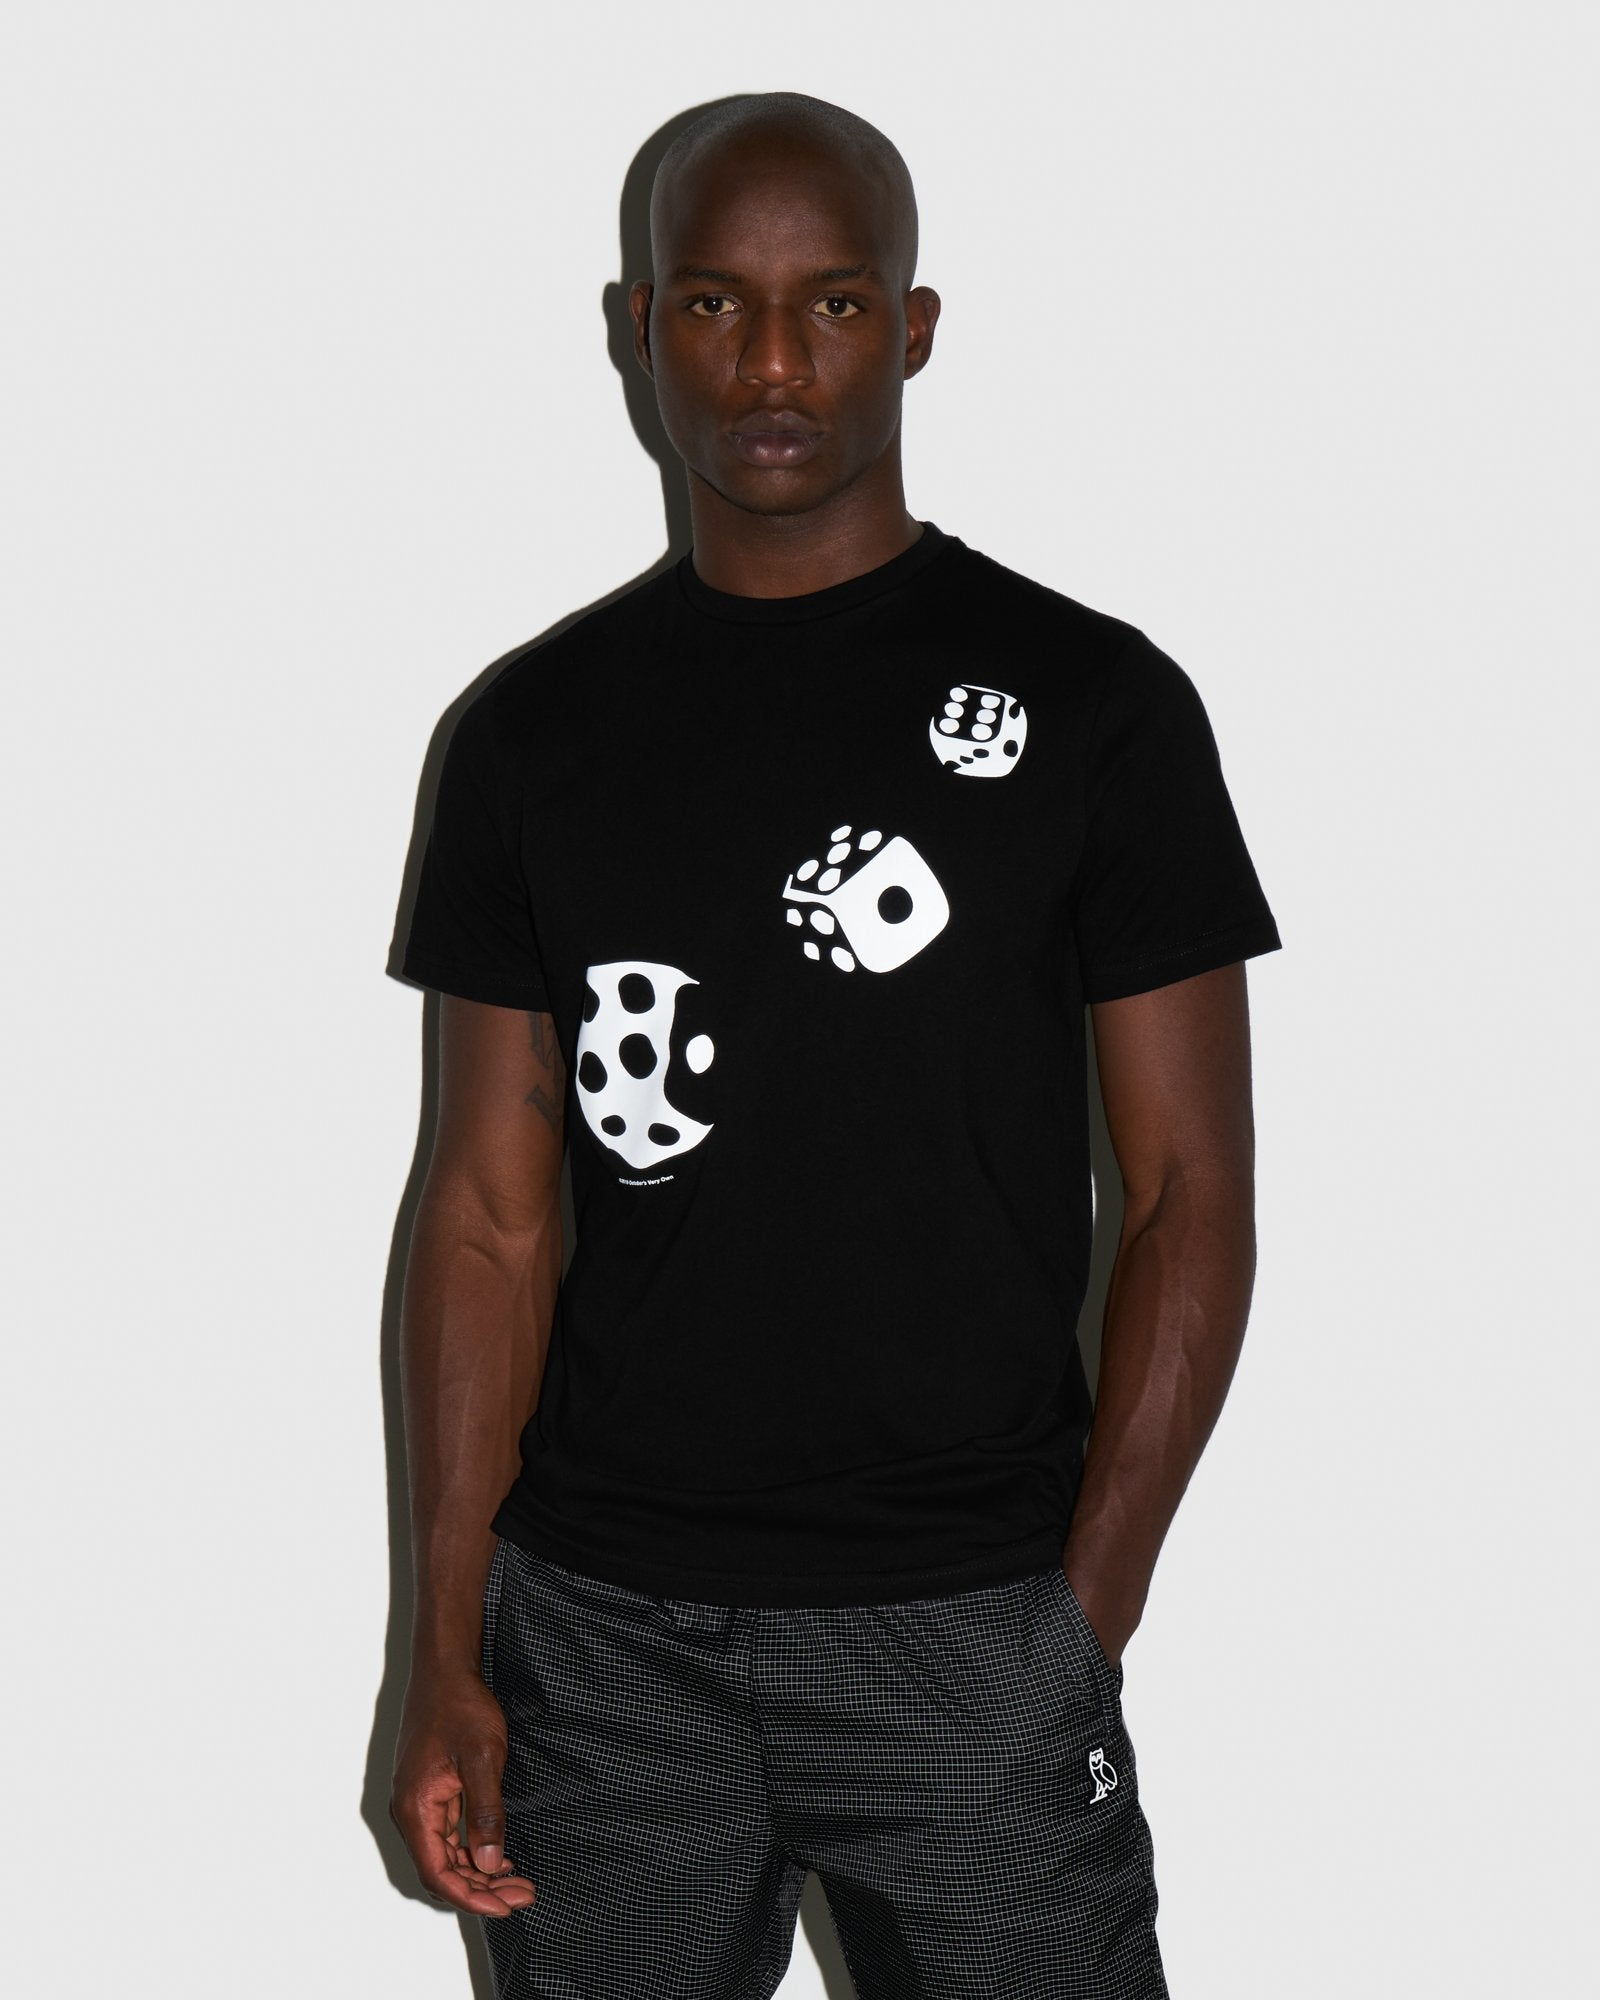 416 DICE T-SHIRT - BLACK IMAGE #2